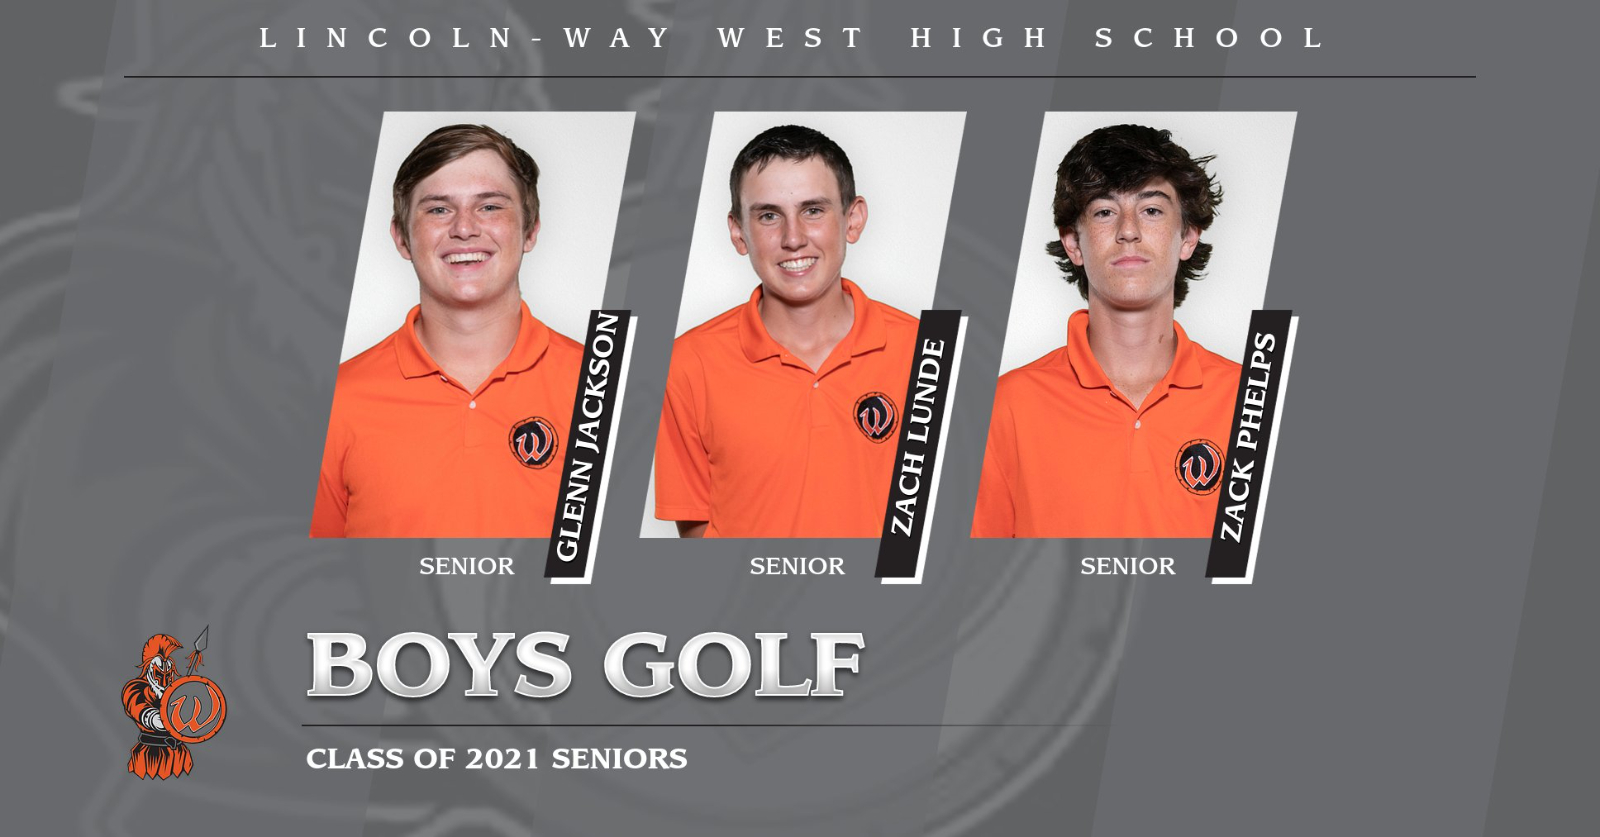 Our boys golf team are recognizing the following seniors today at their home match vs Plainfield East: Glenn, Zach & Zack. Good luck Warriors!